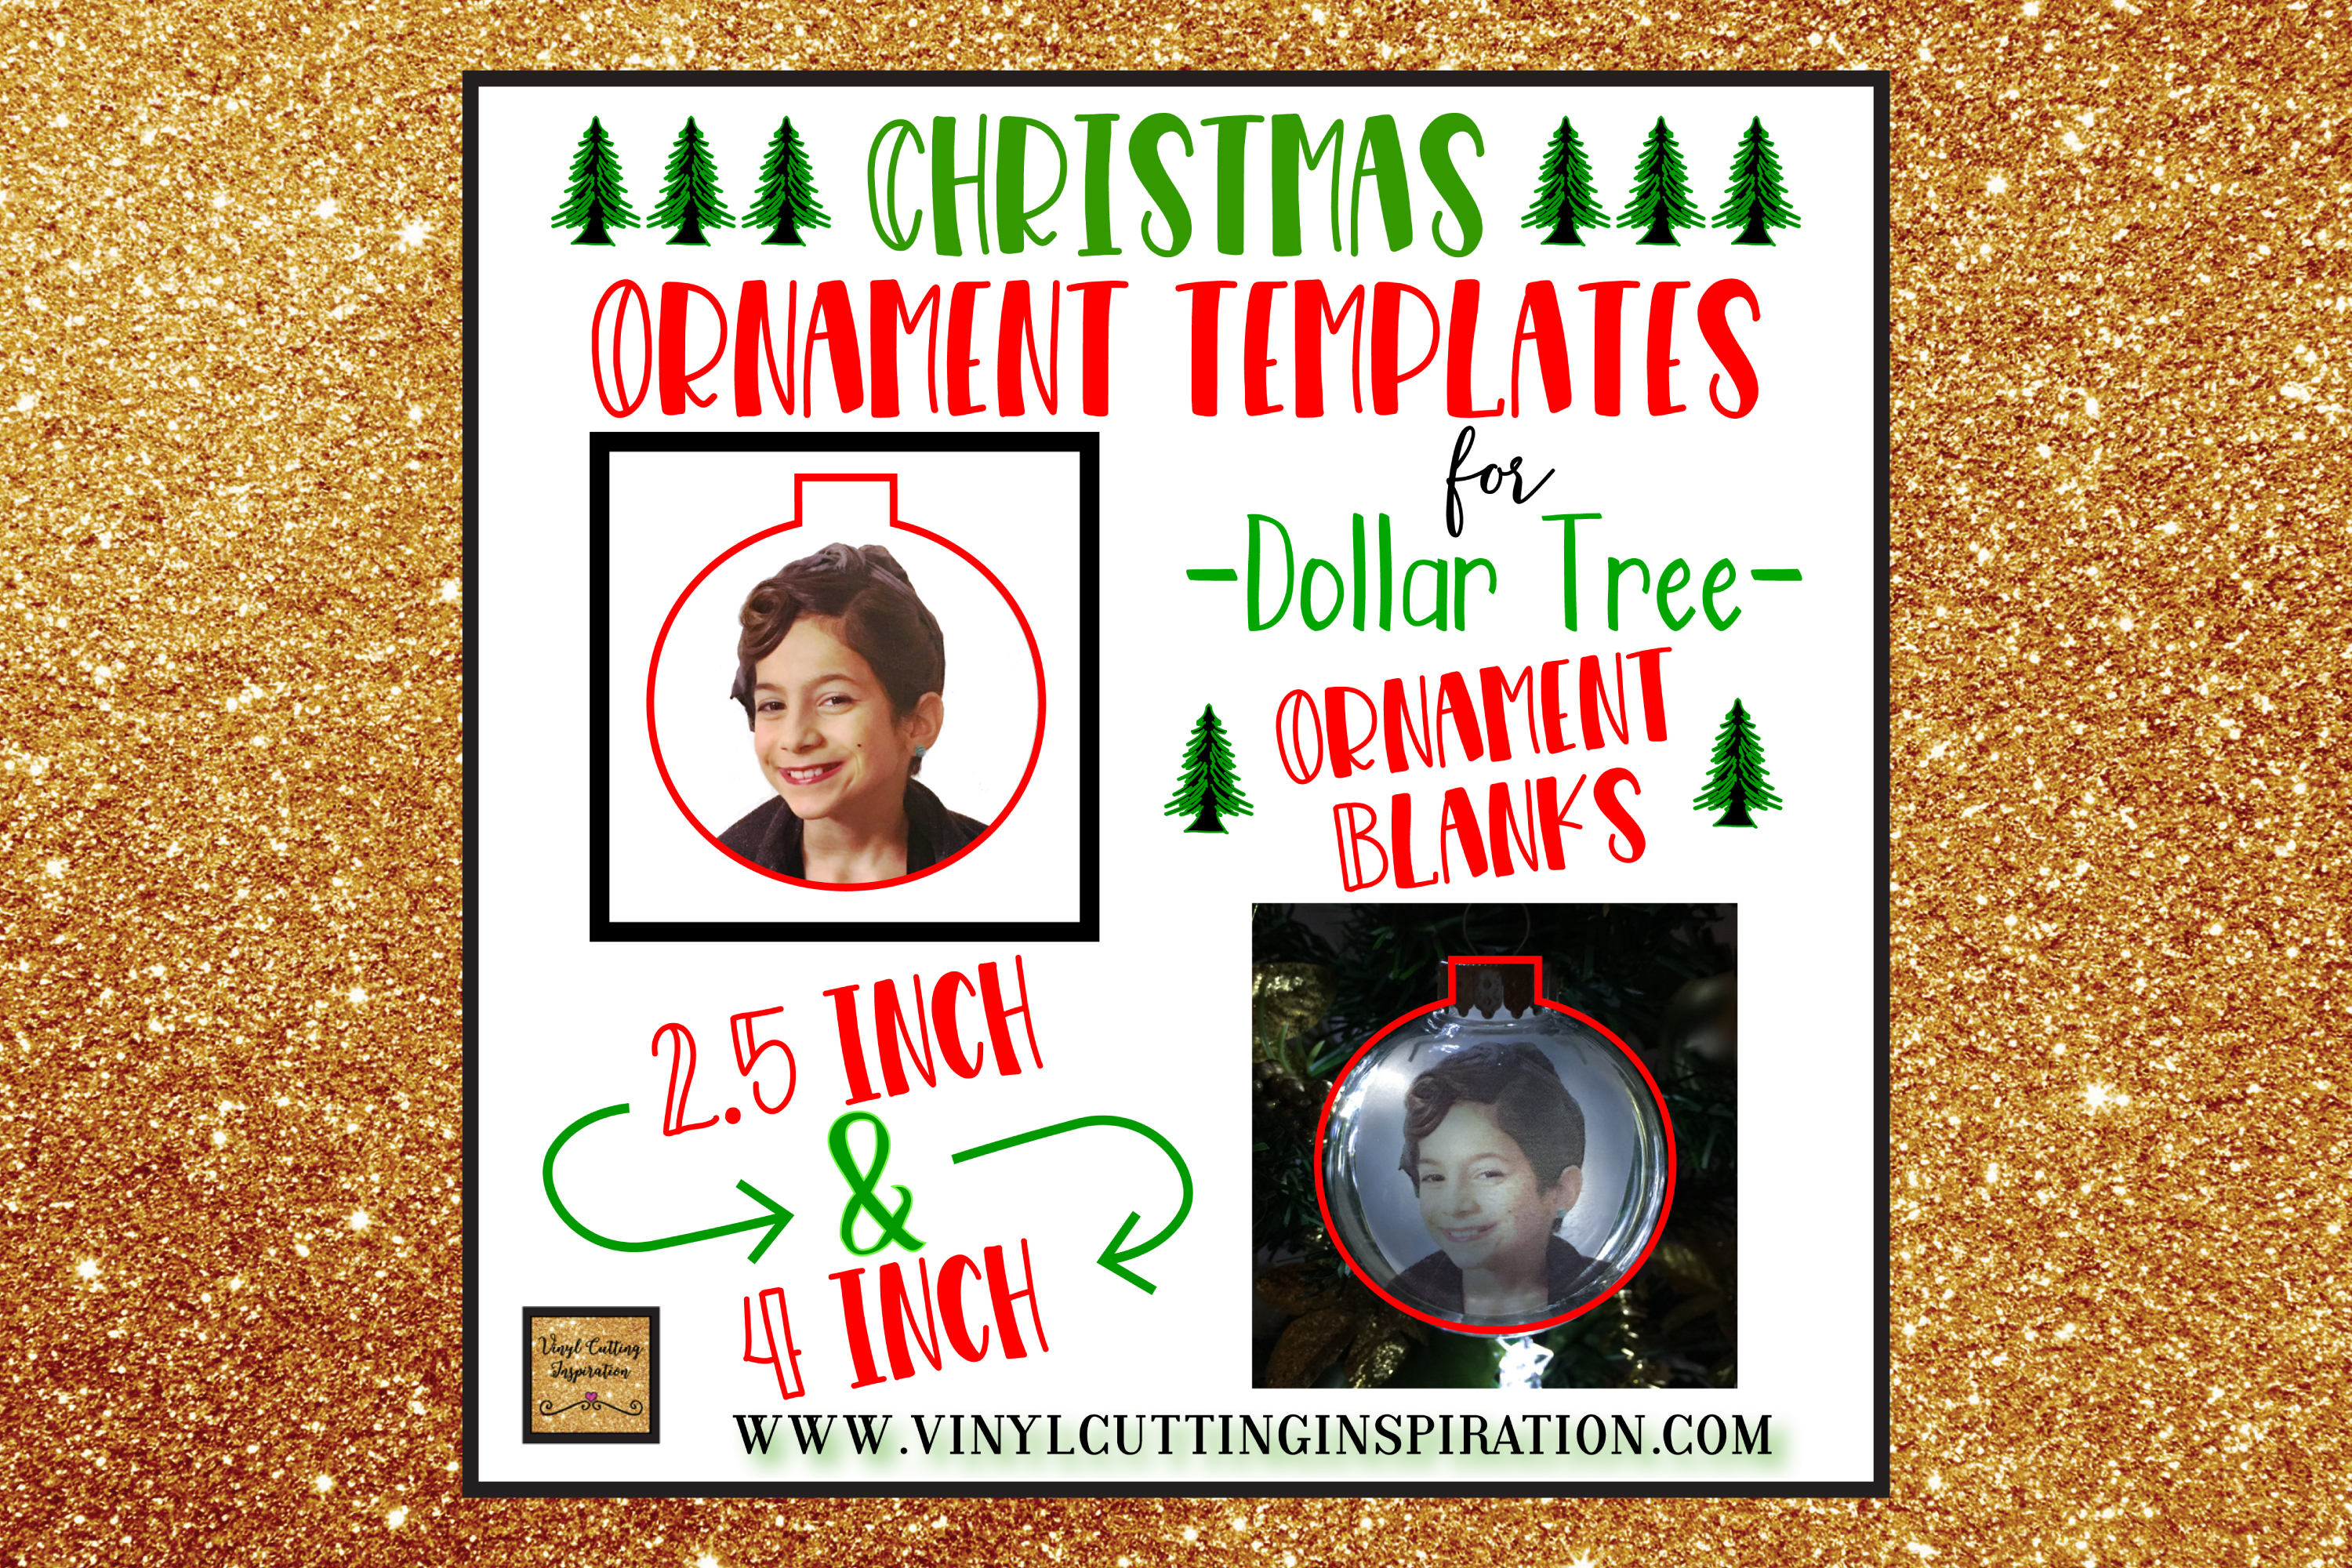 Christmas Ornament Templates for Dollar Tree Blanks! SVG Dxf example image 2